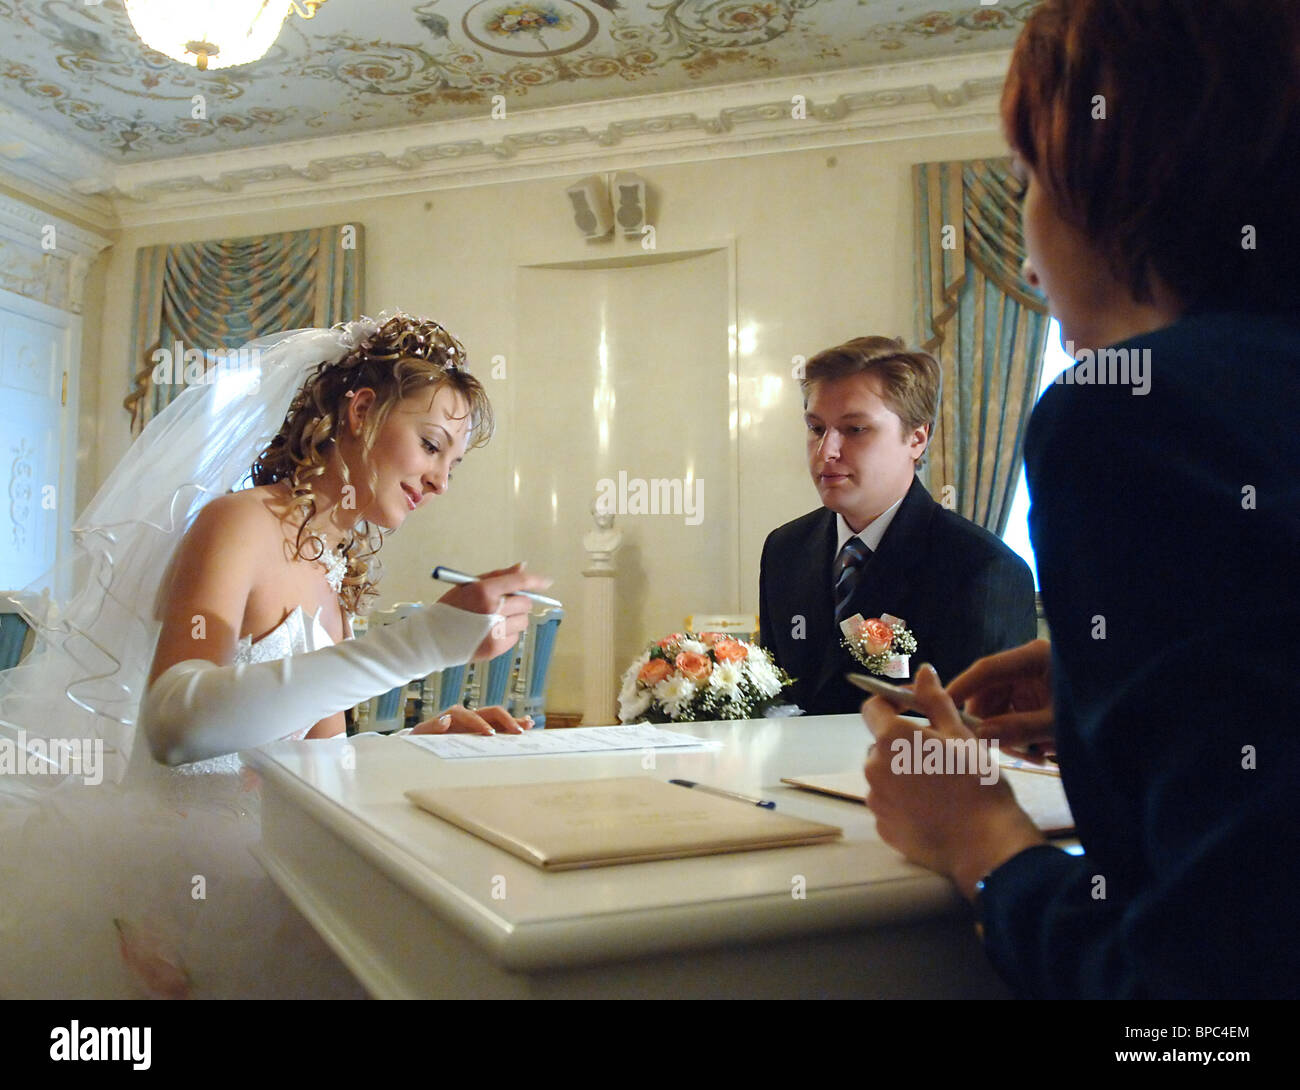 Wedding ceremonies held at Moscow City Hall - Stock Image